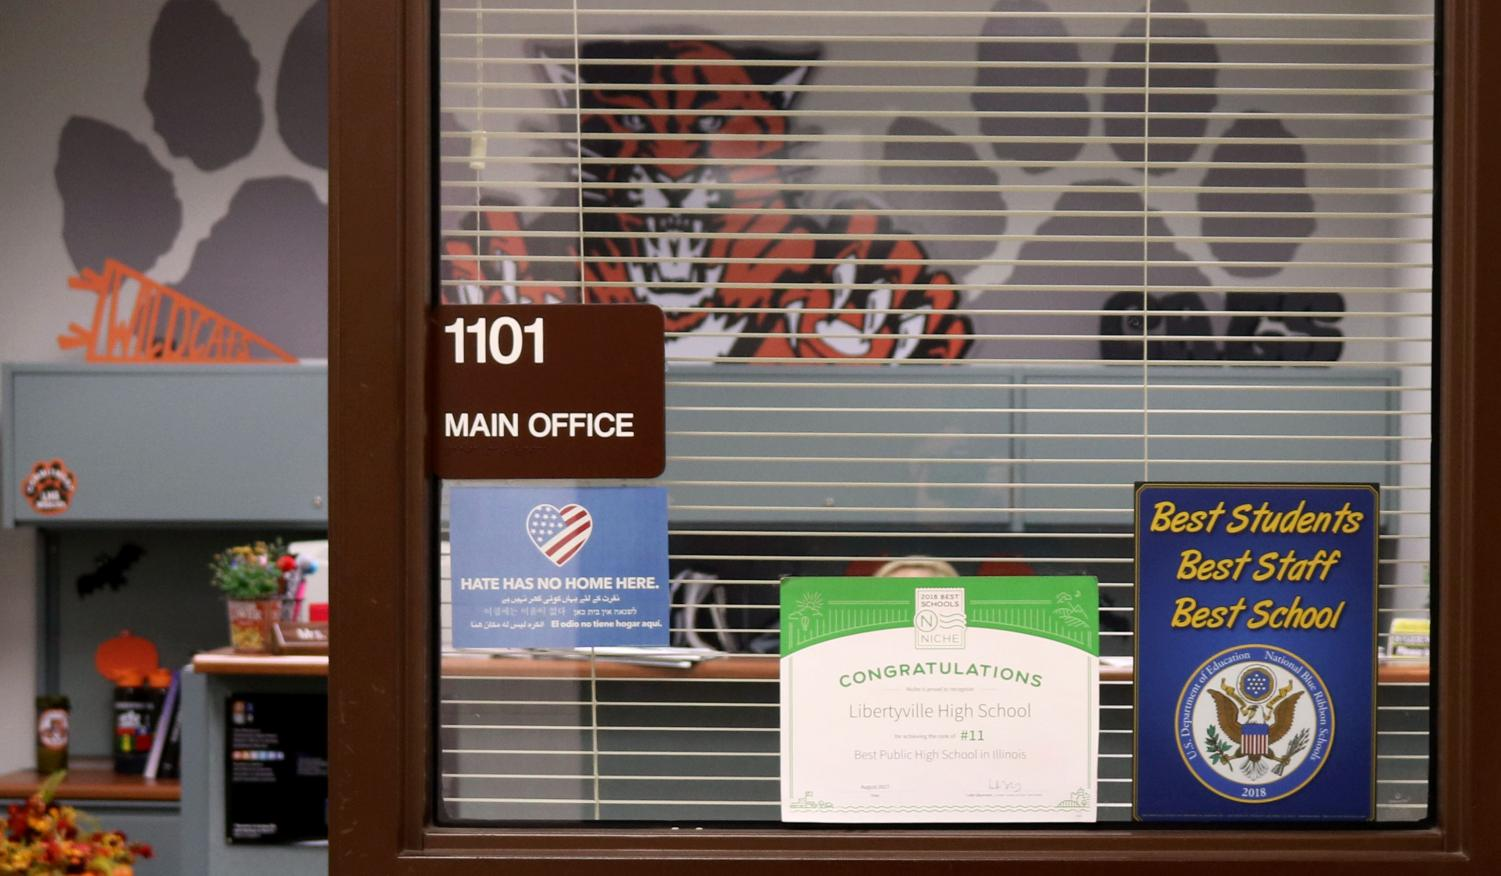 LHS recently received a package of souvenirs that state some of the reasons why LHS won the Blue Ribbon Award of Excellence. The blue sticker (bottom right), which is located on the window of the main office, was part of the package.